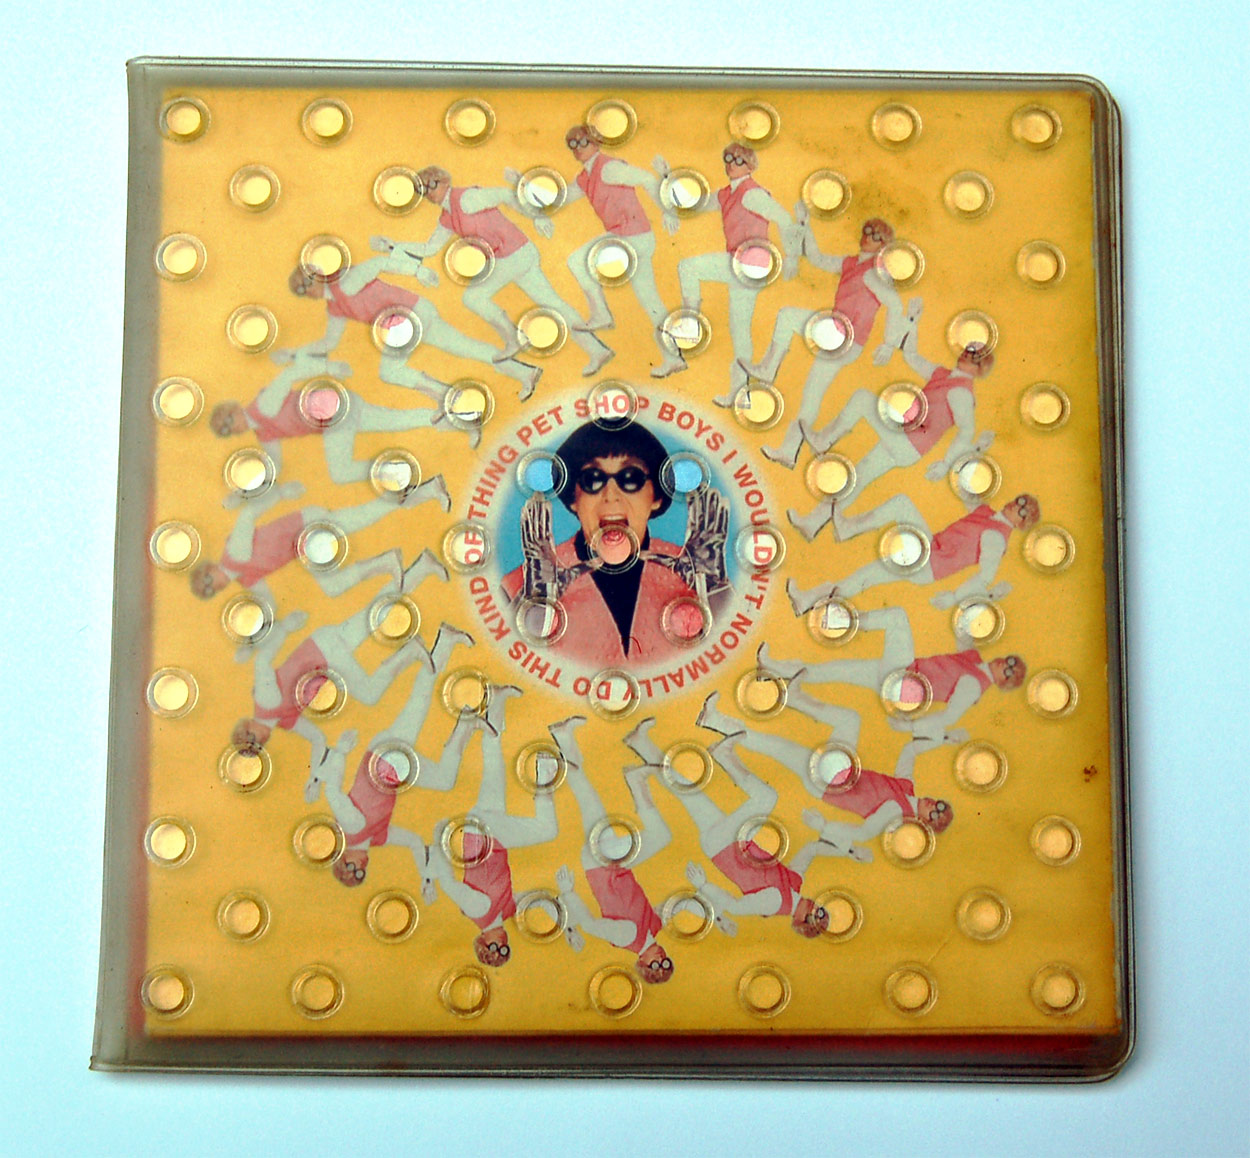 Pet Shop Boys / I Wouldn't Normally Do This Kind Of Thing CD Single